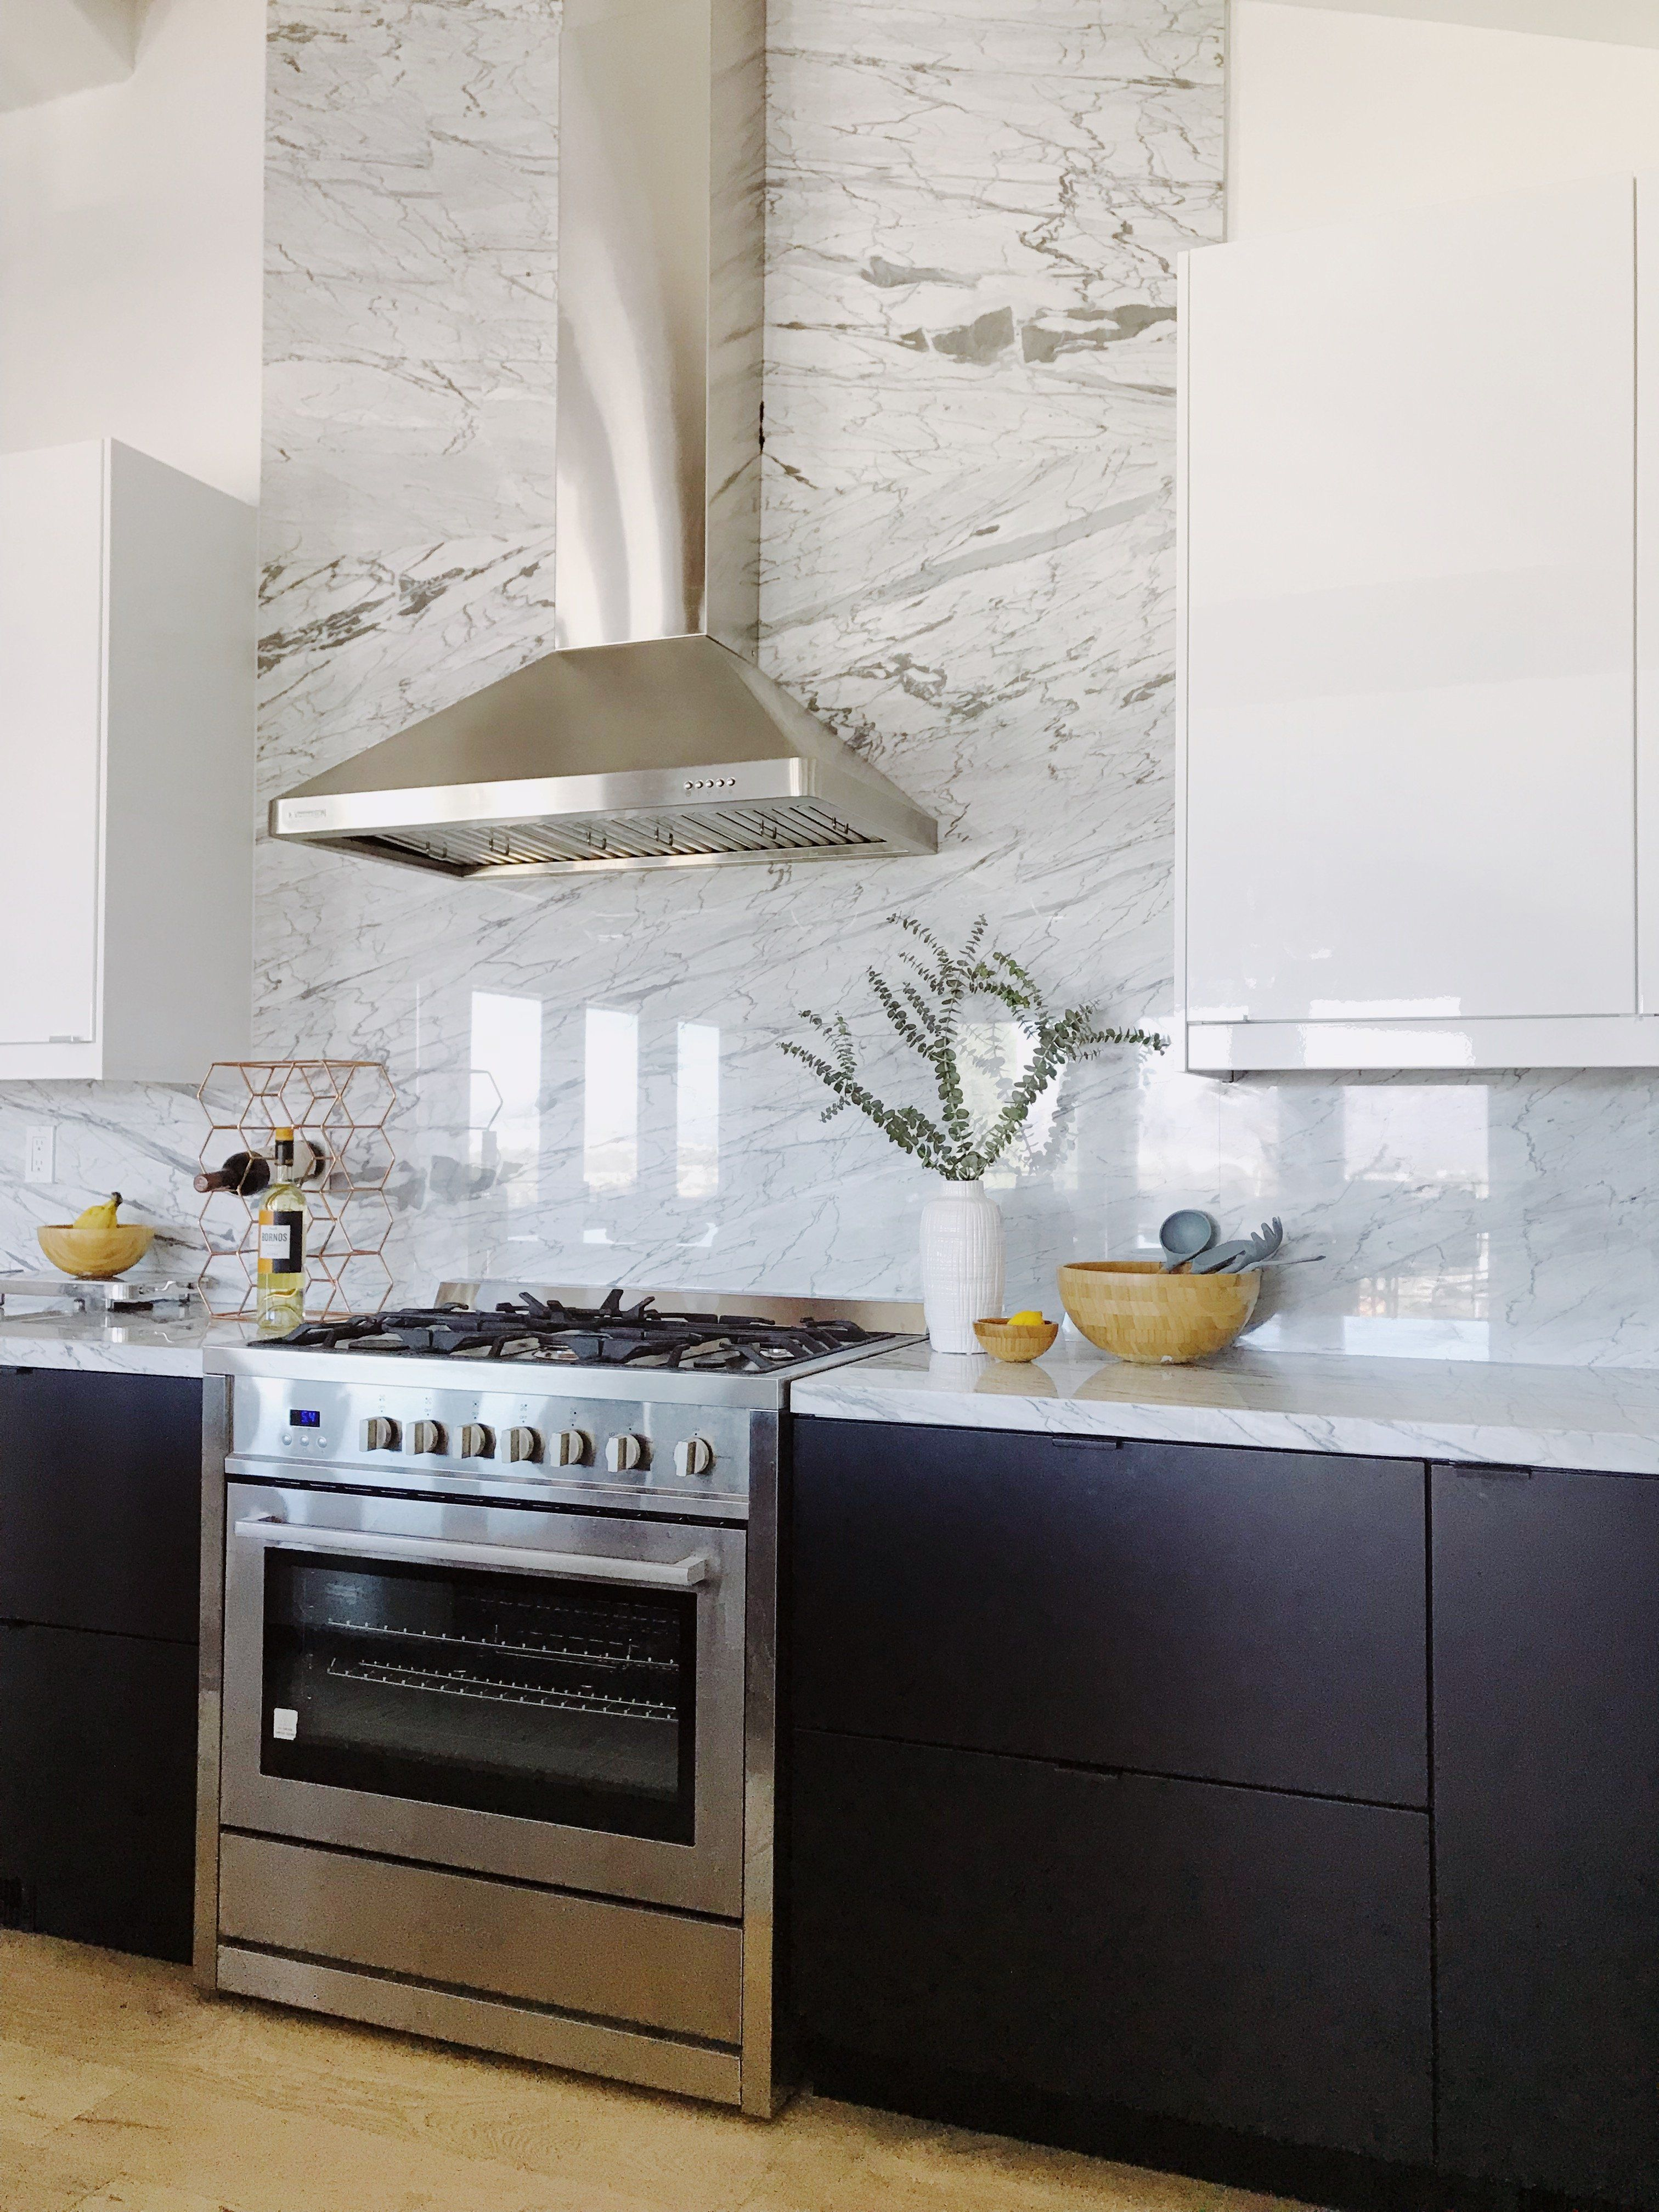 Amazing Black And White Kitchen With Marble Backsplash In 2020